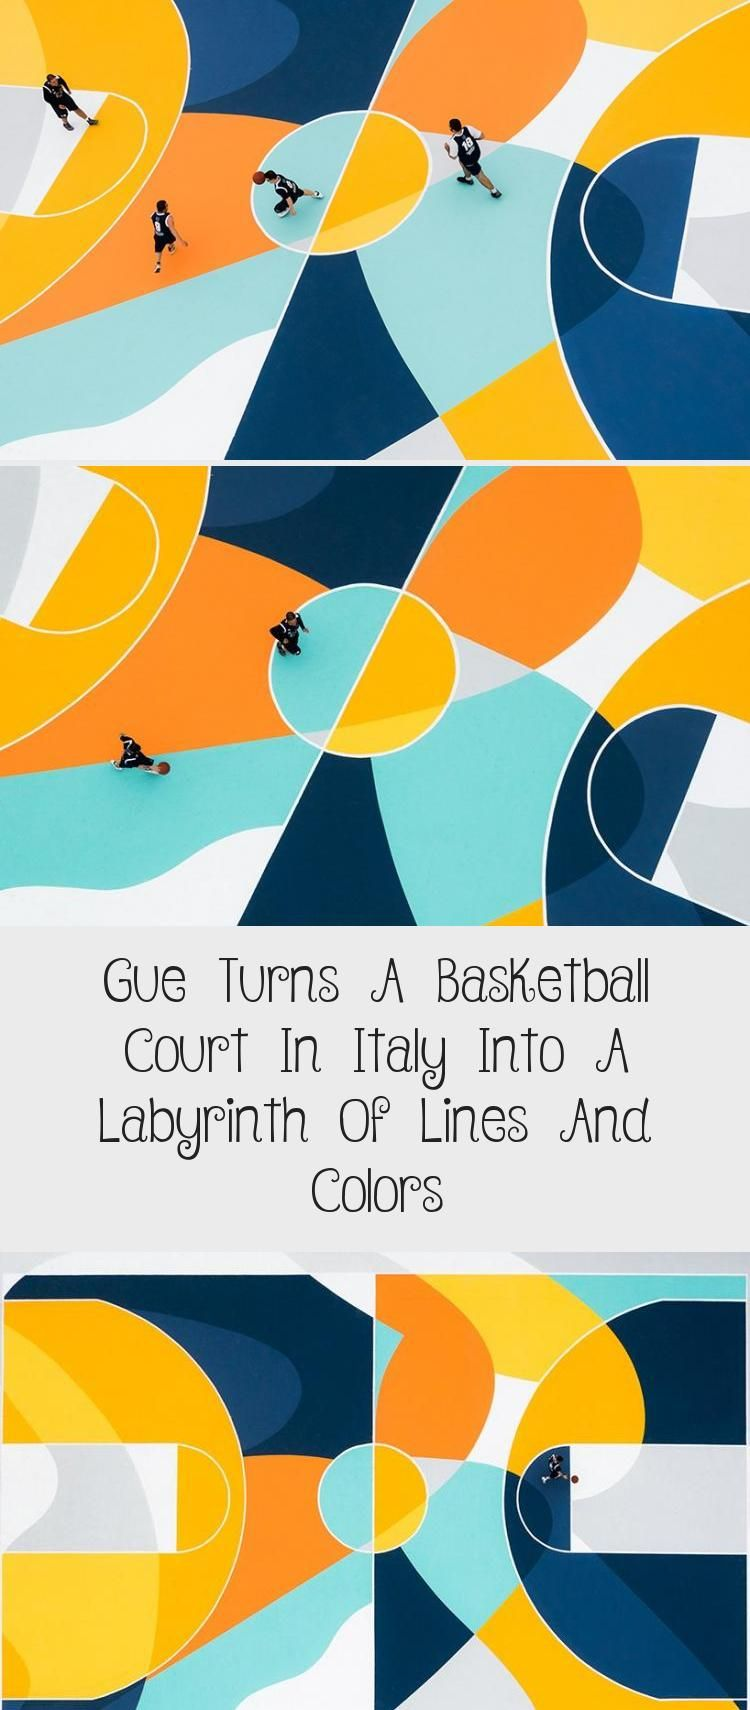 Gue Turns A Basketball Court In Italy Into A Labyrinth Of Lines And Colors  - Design in 2020 | Pop art design, Basketball court, Art design